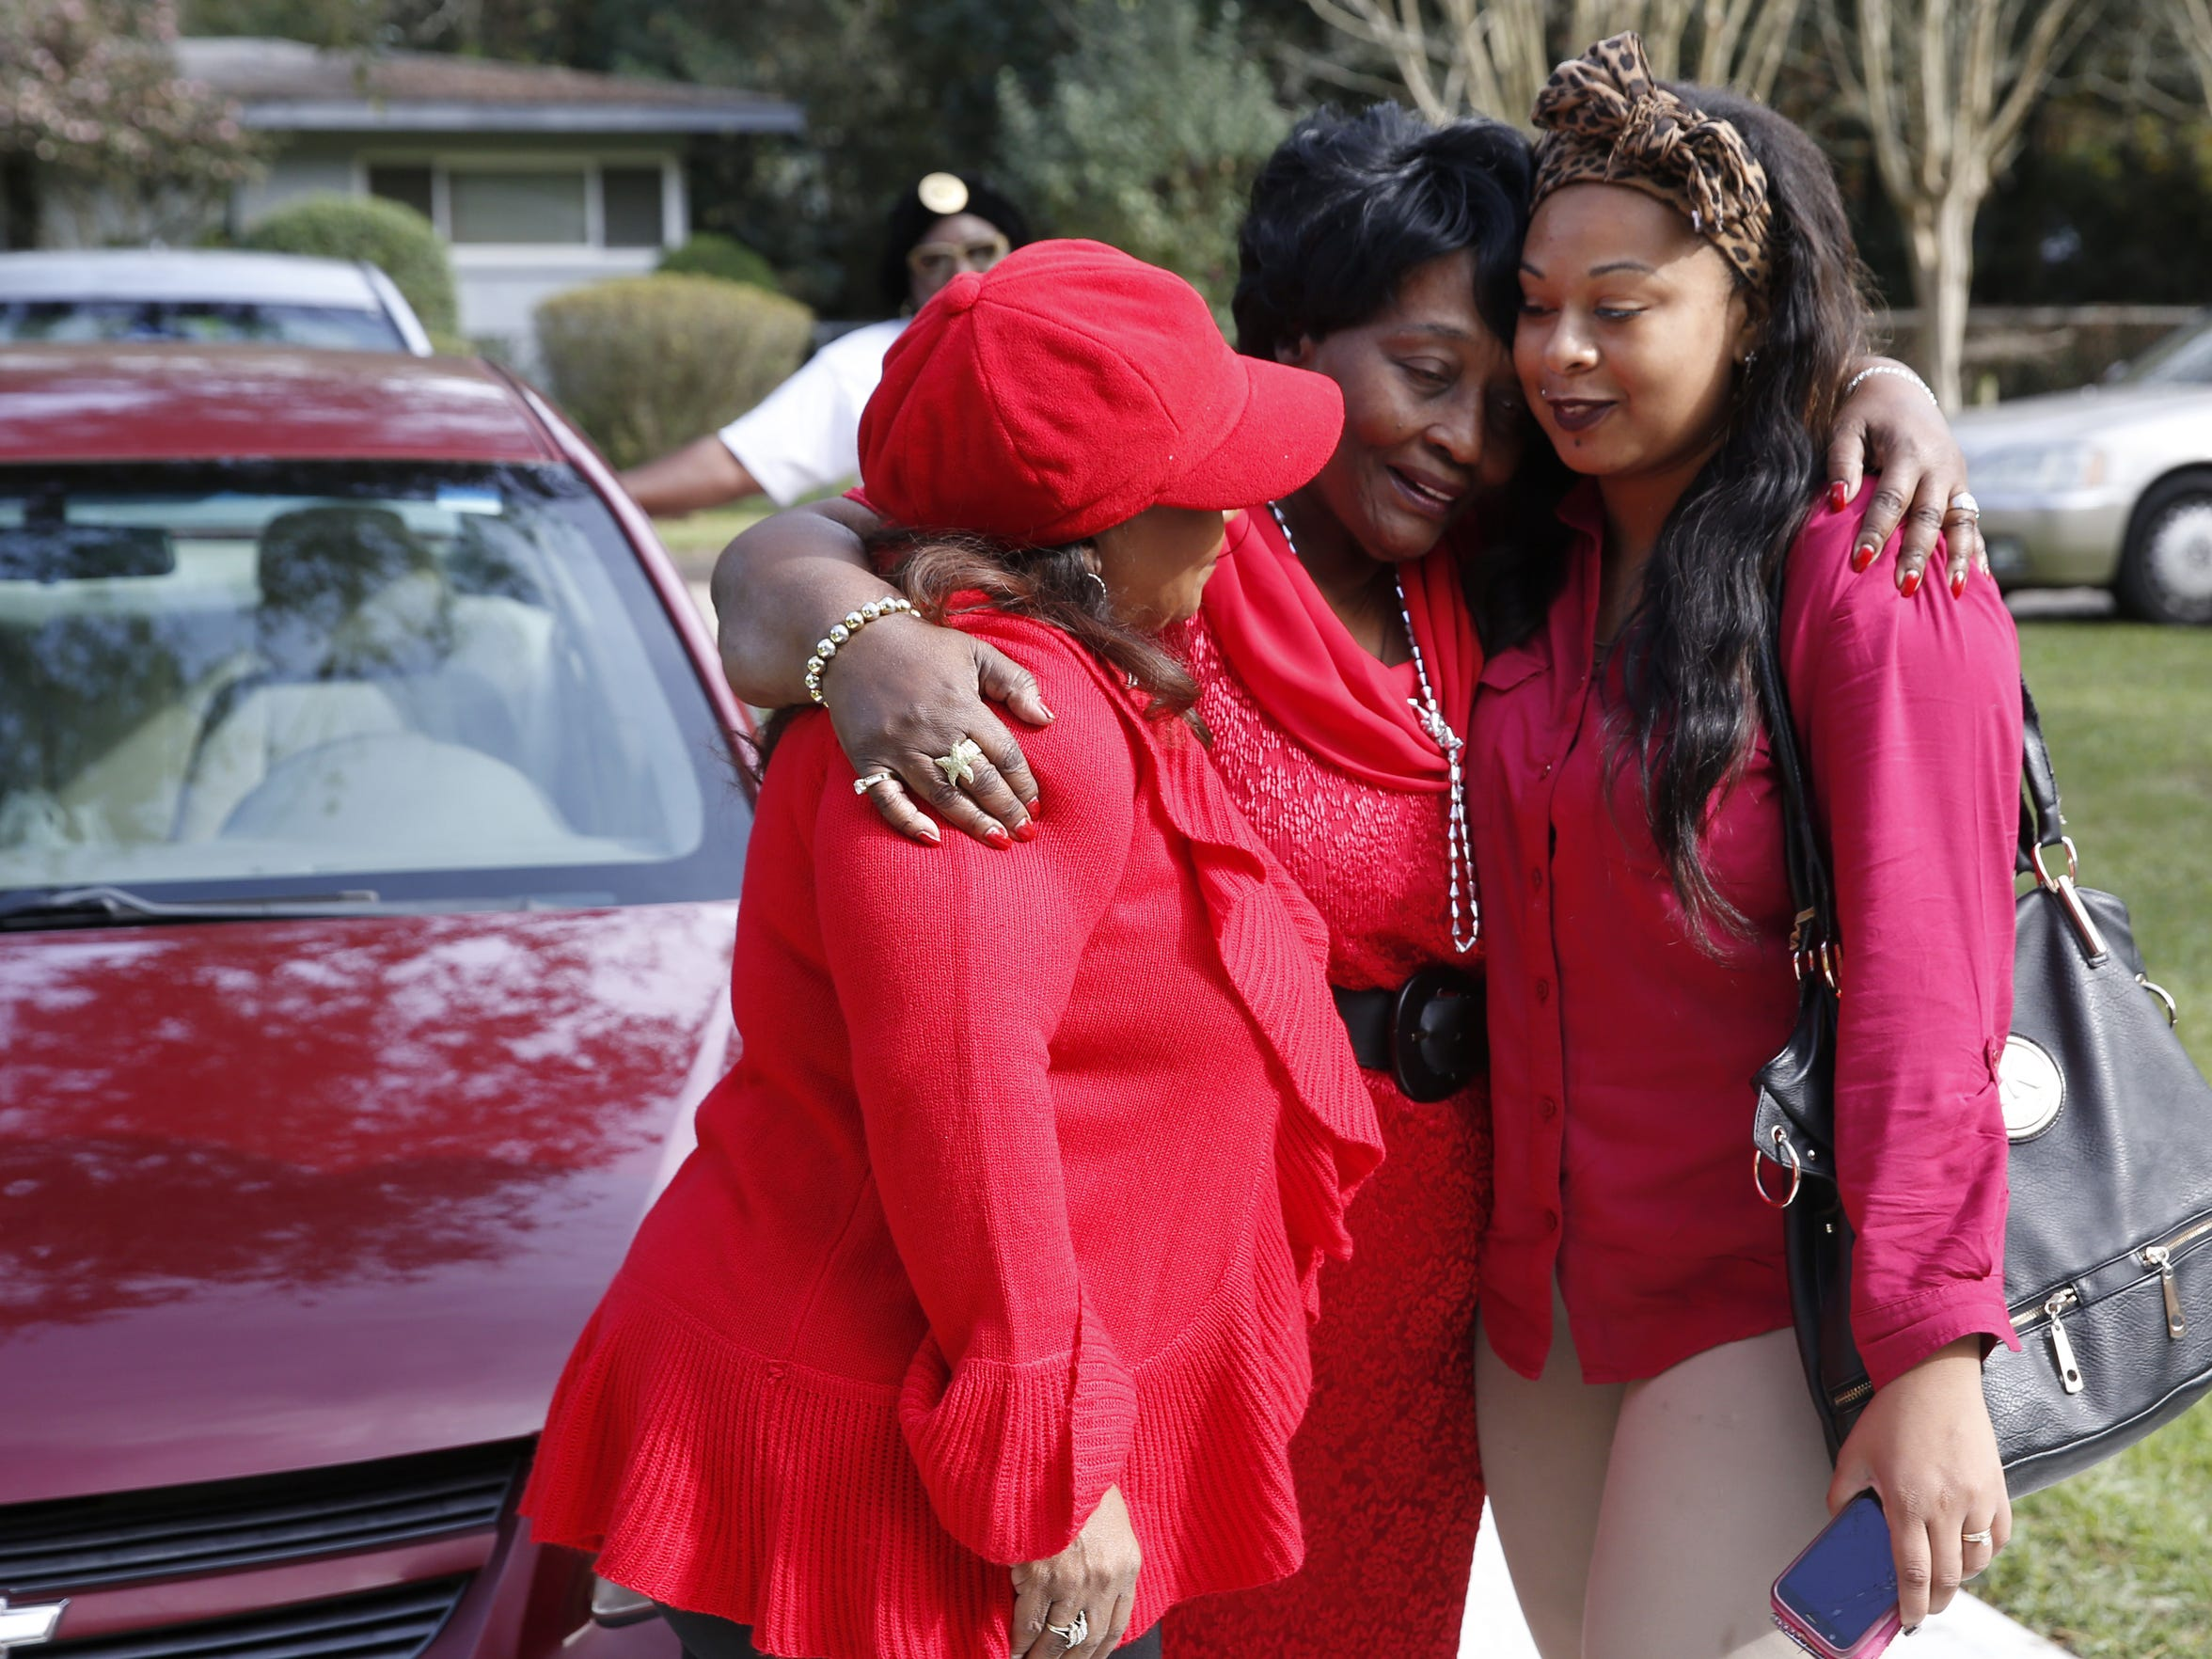 Corine Beard, center, hugs her daughter Yvette Derice, left, and grandaughter Markeshia Browning Friday in the driveway of Corine's new home, the first she has ever owned.